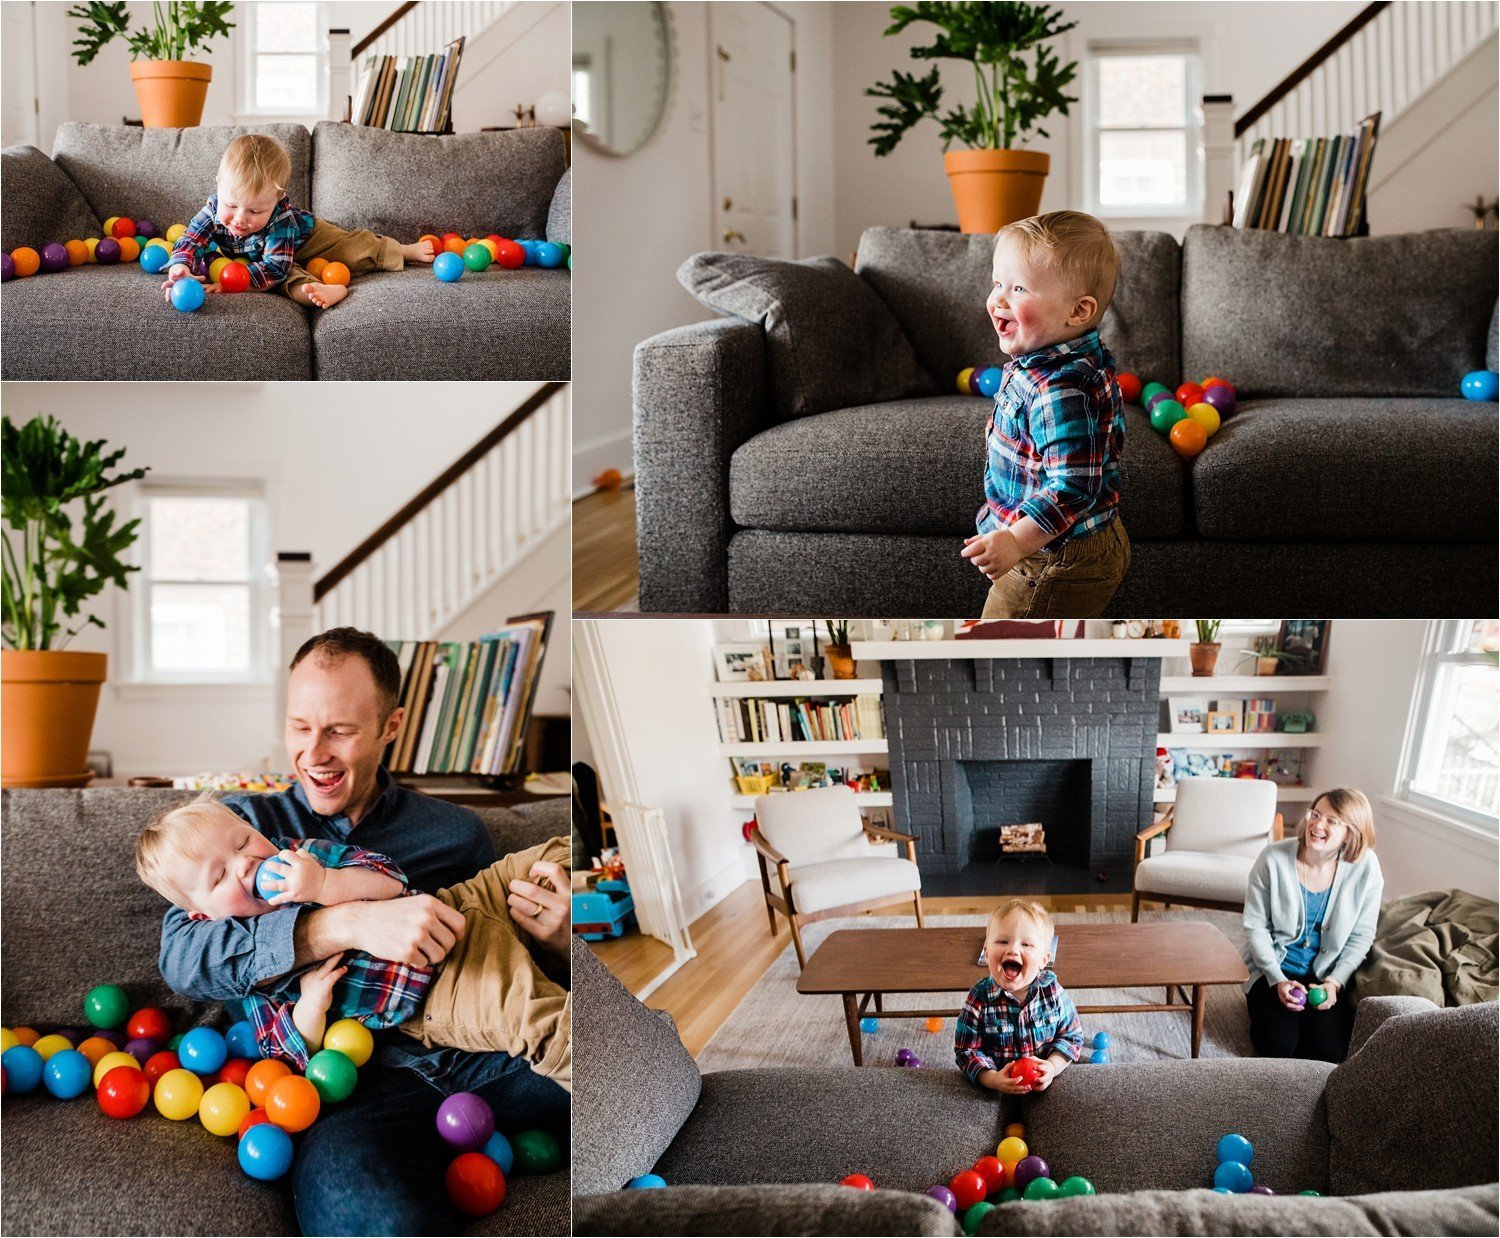 natural and playful family photographs at home